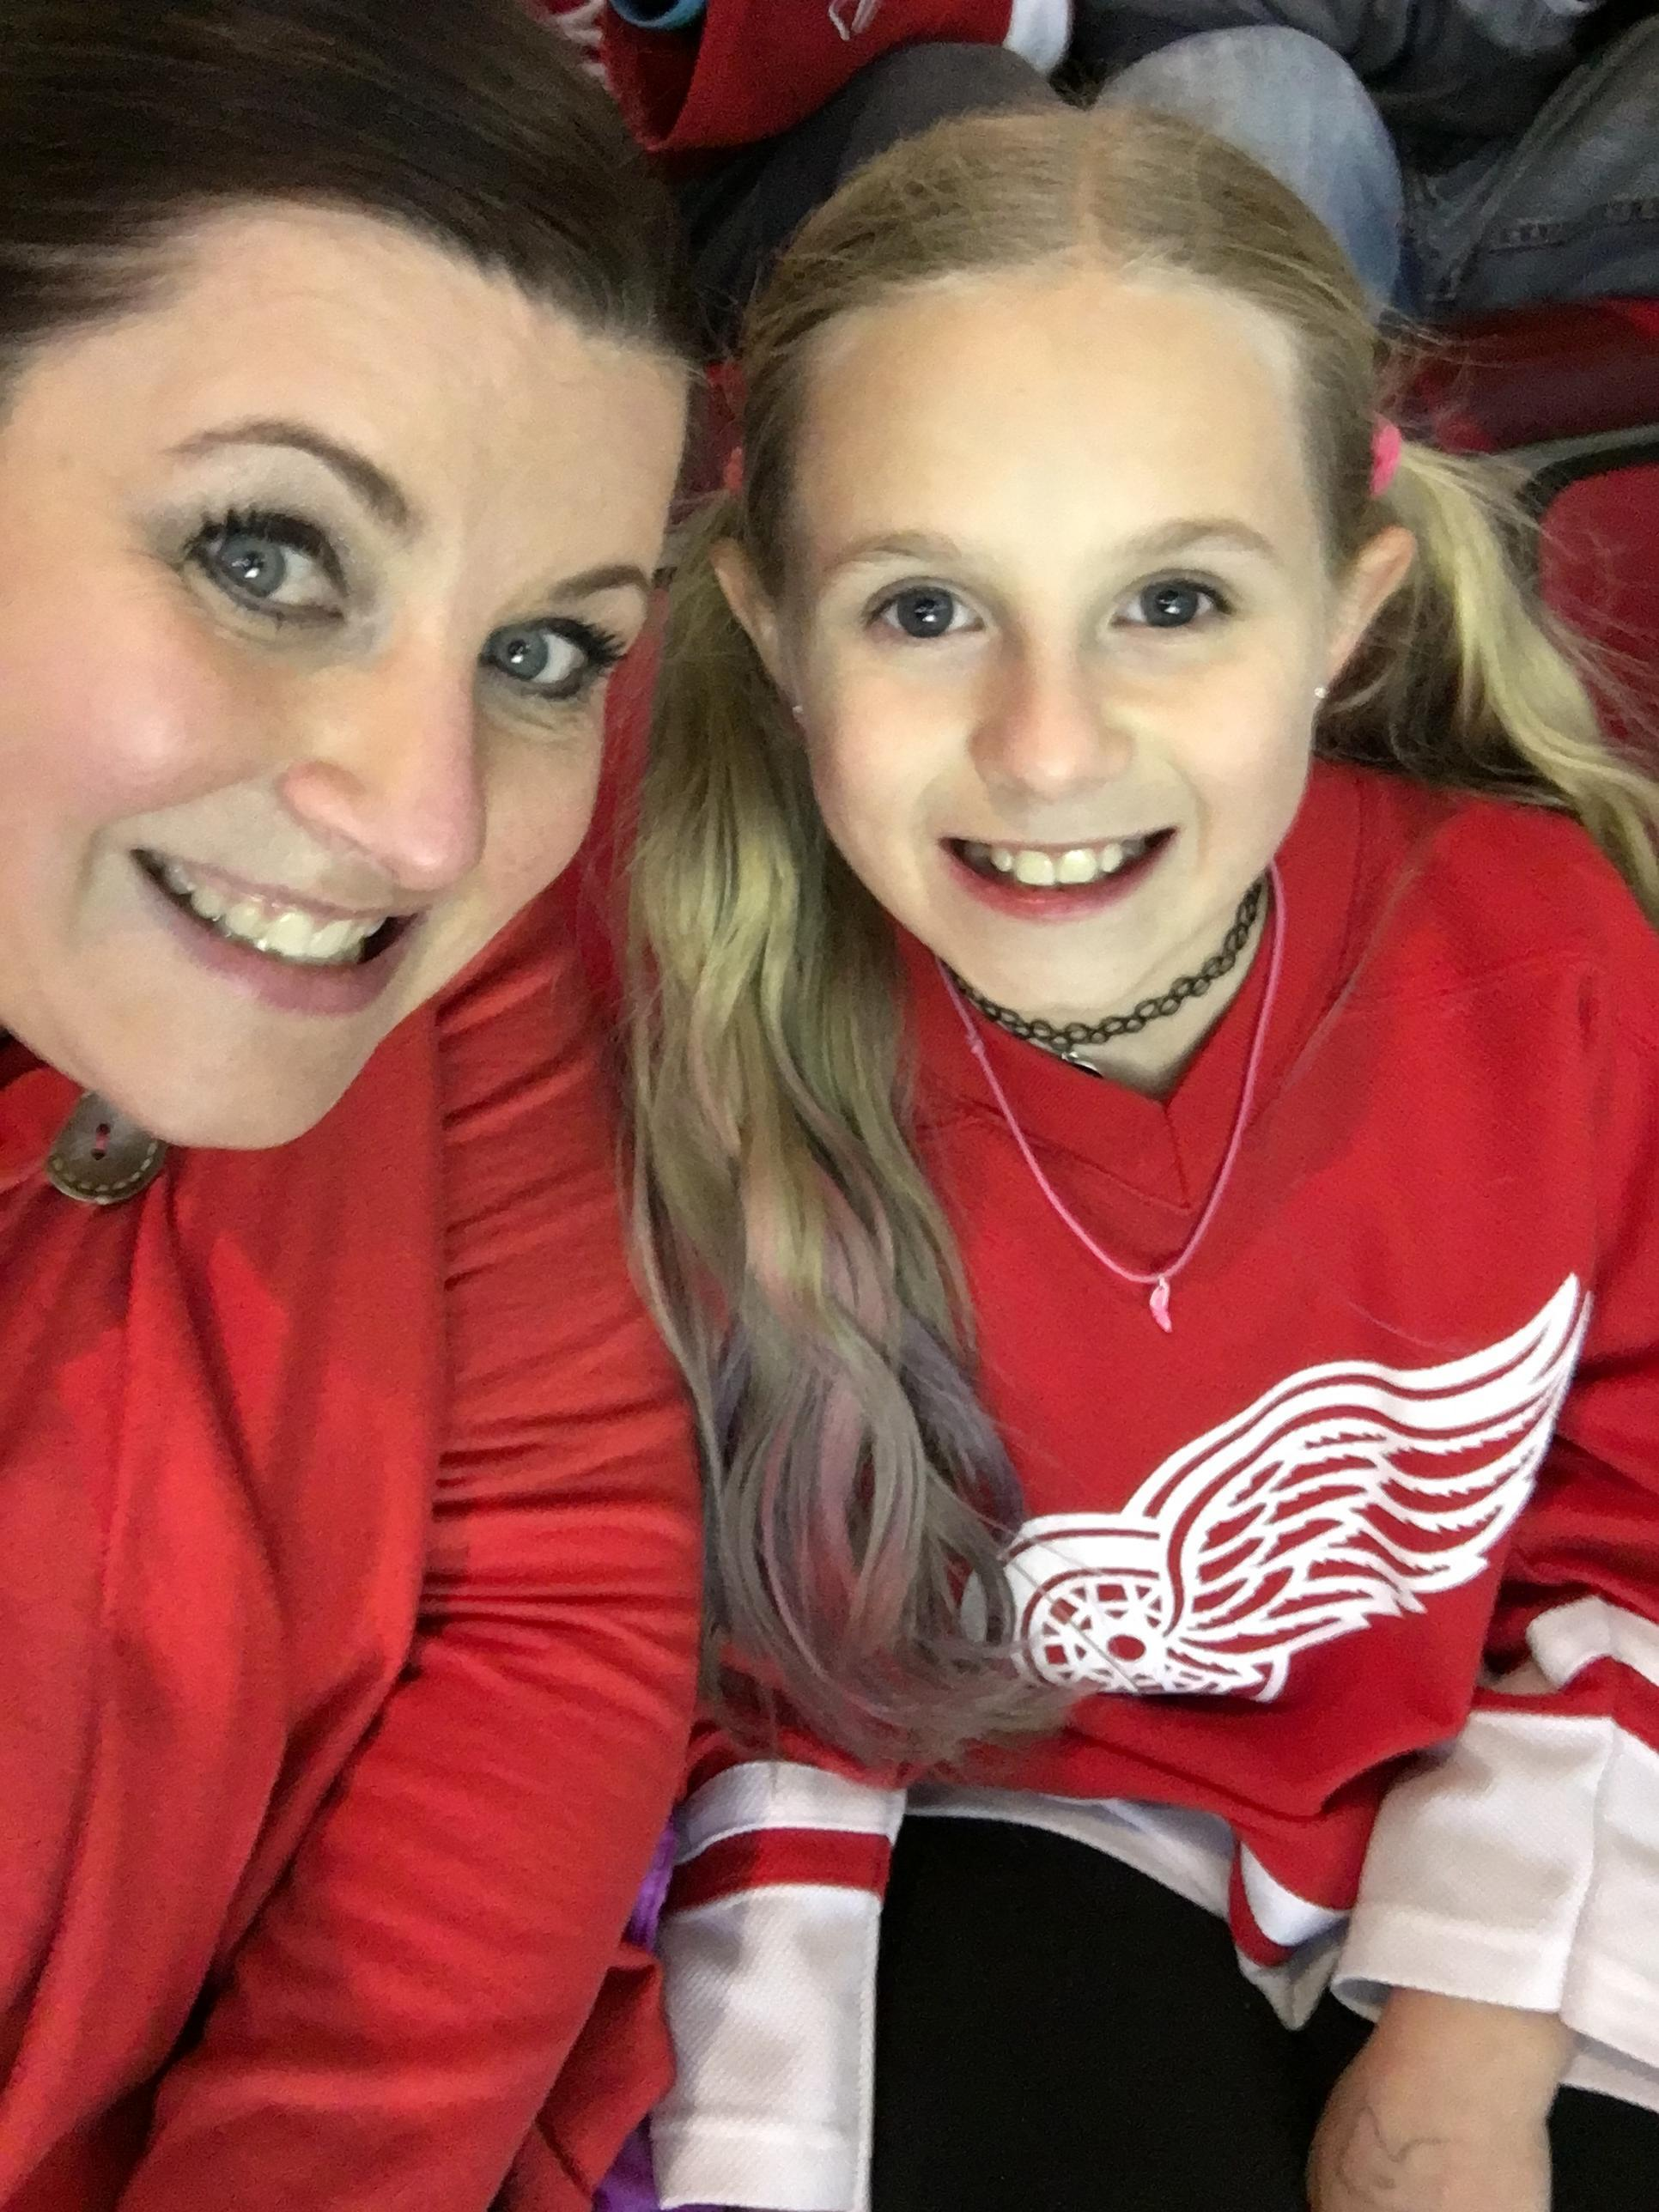 Joe Louis Arena Section 202 Row 18 Seat 2-3